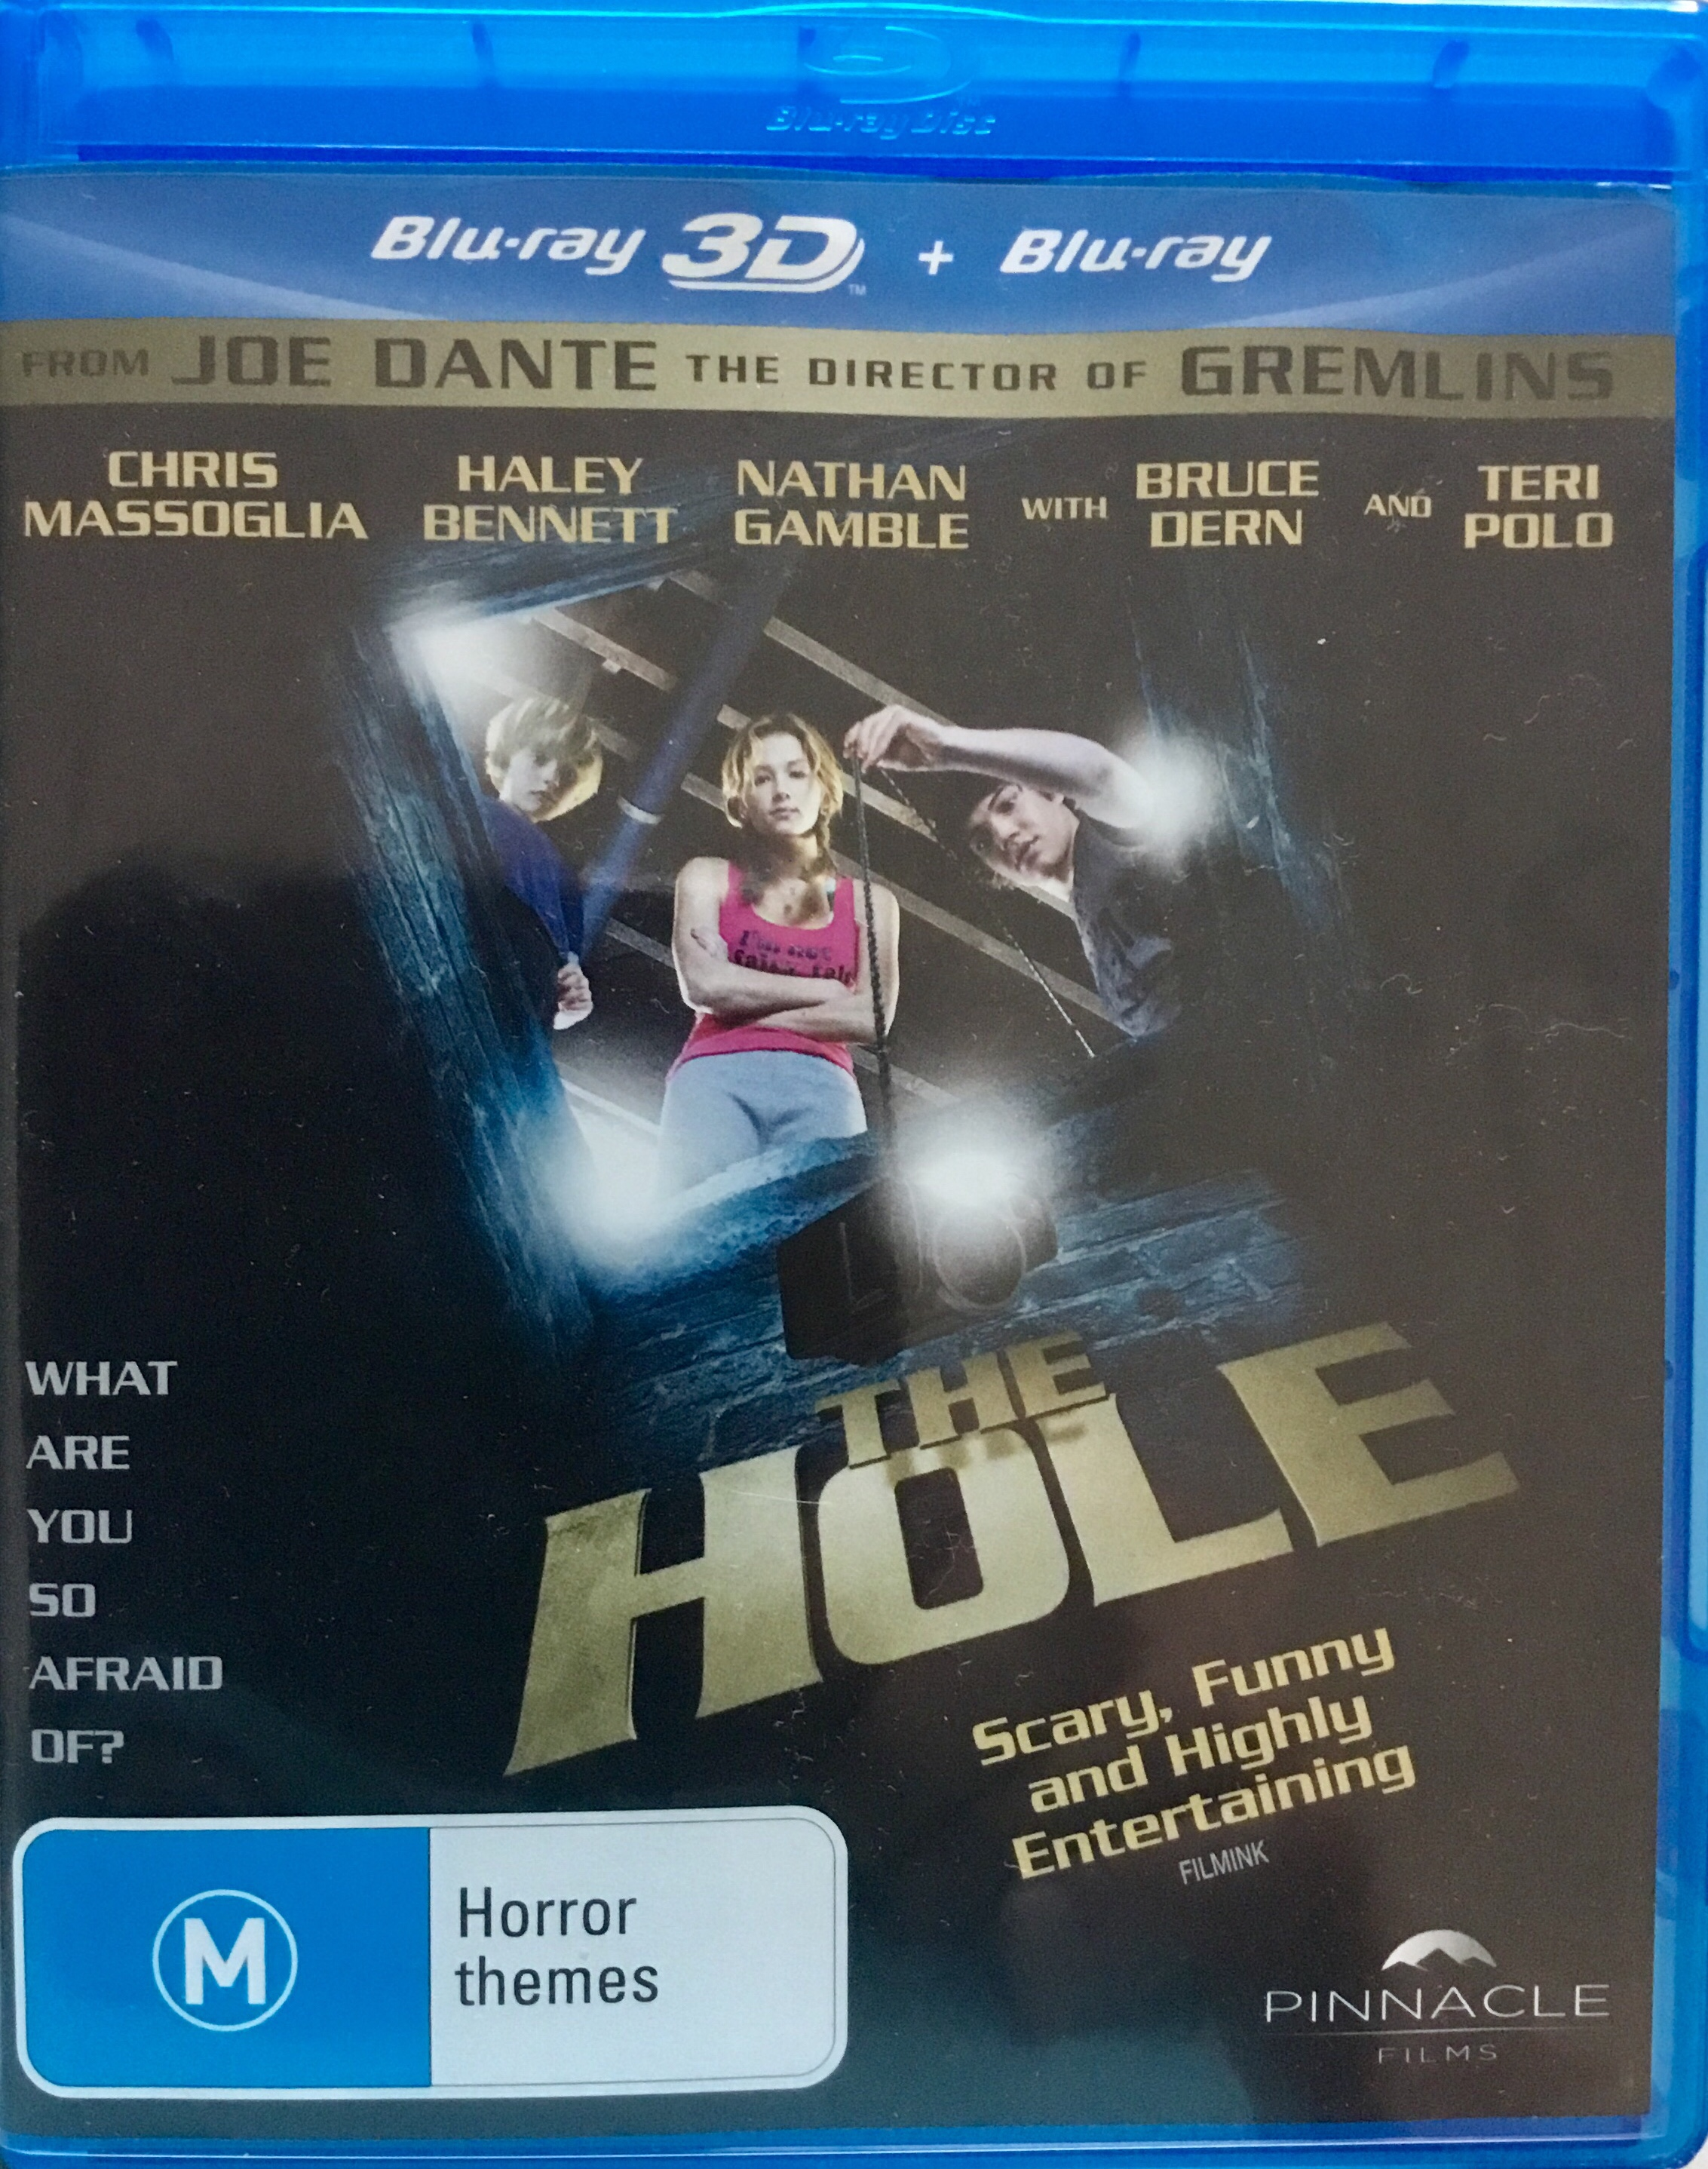 The cover to the Australian release of The Hole (2009)